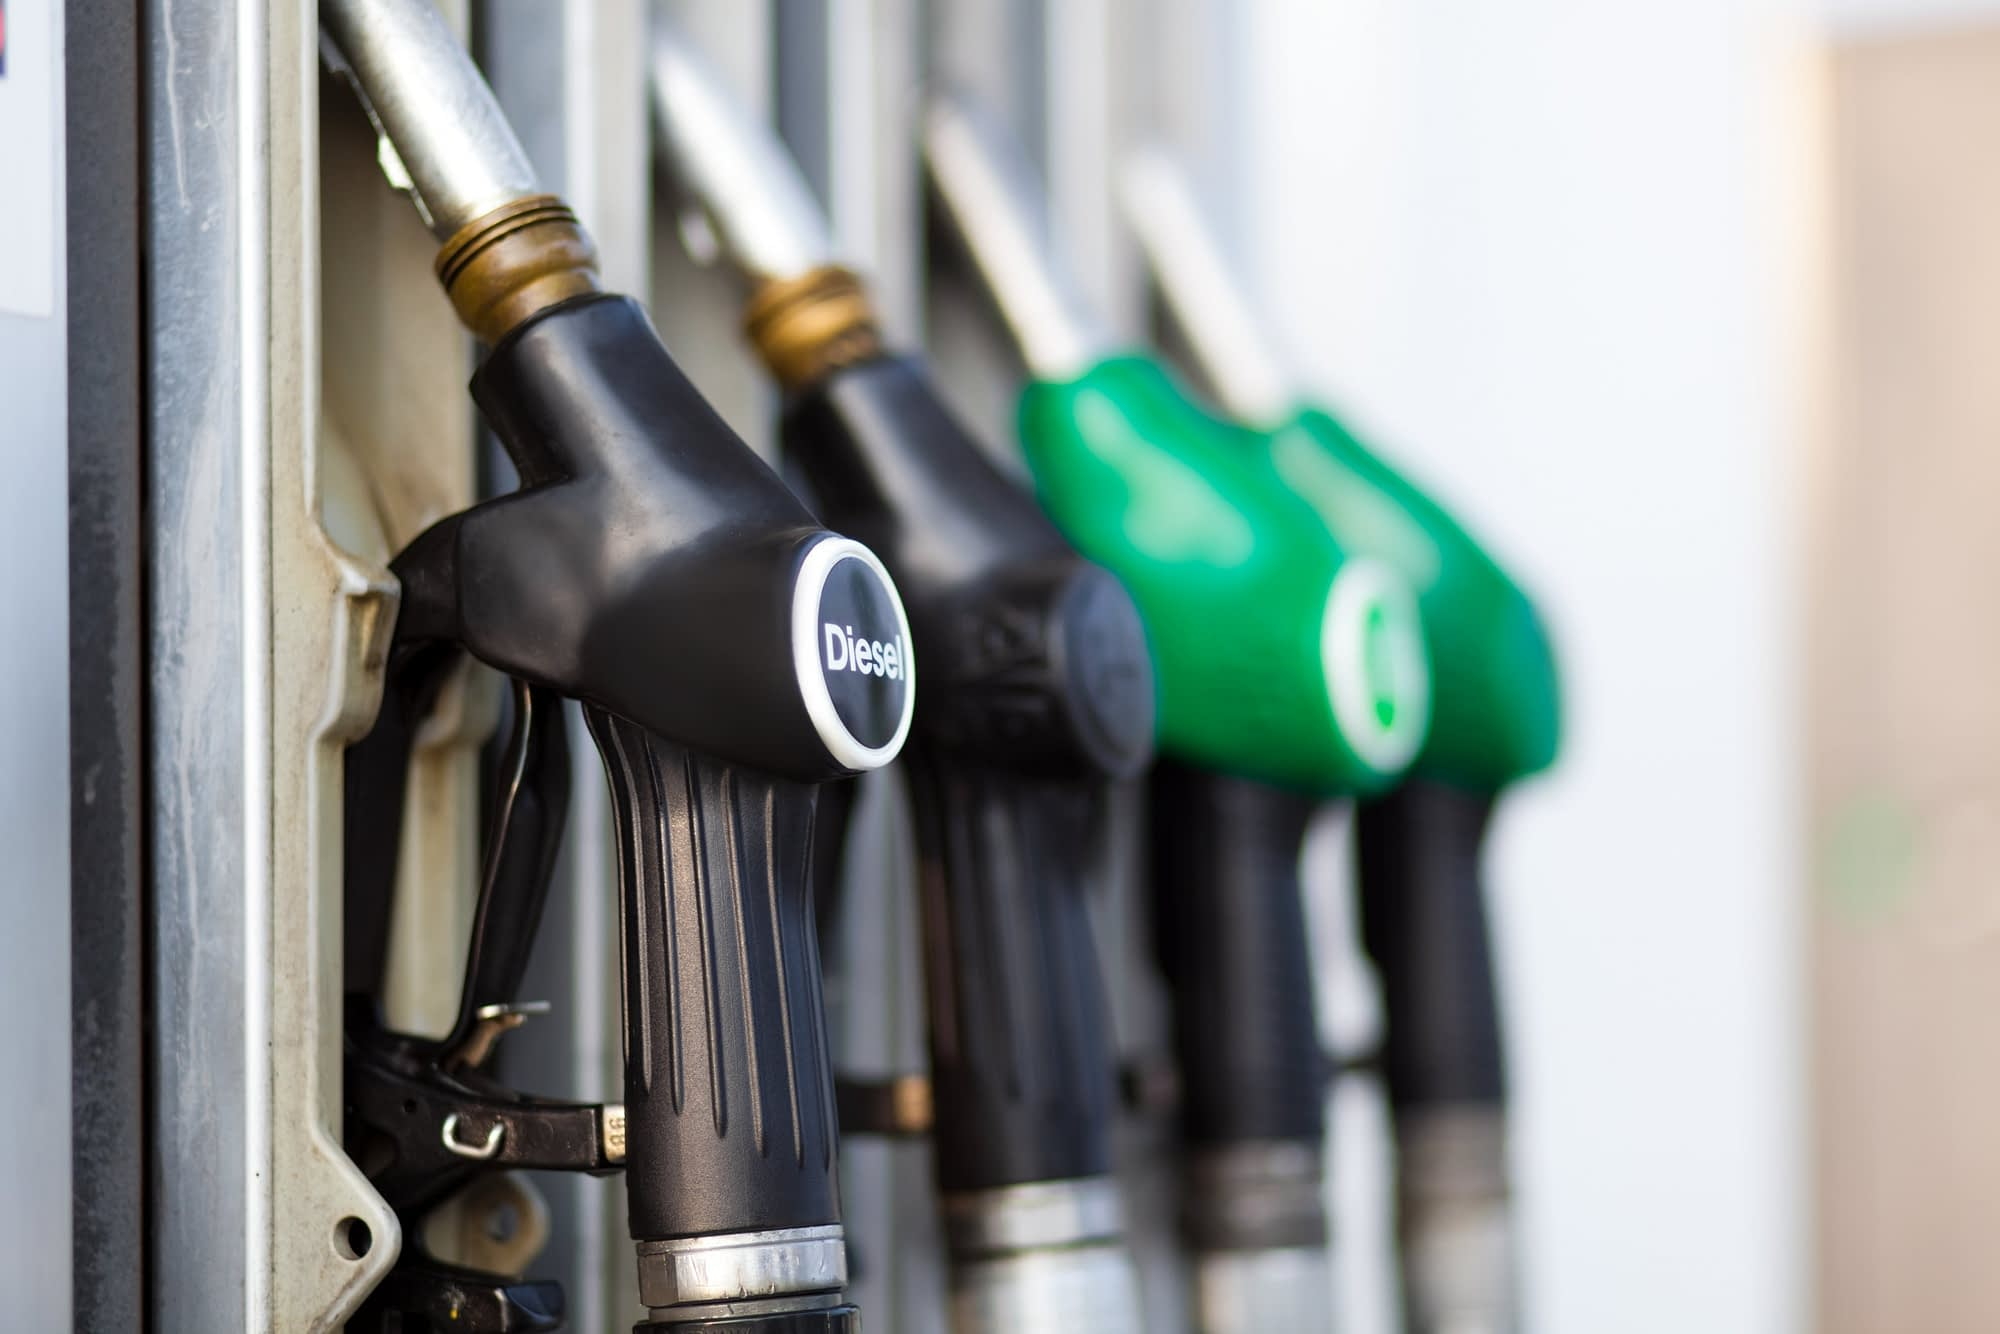 Diesel and petrol nozzles at fuel station